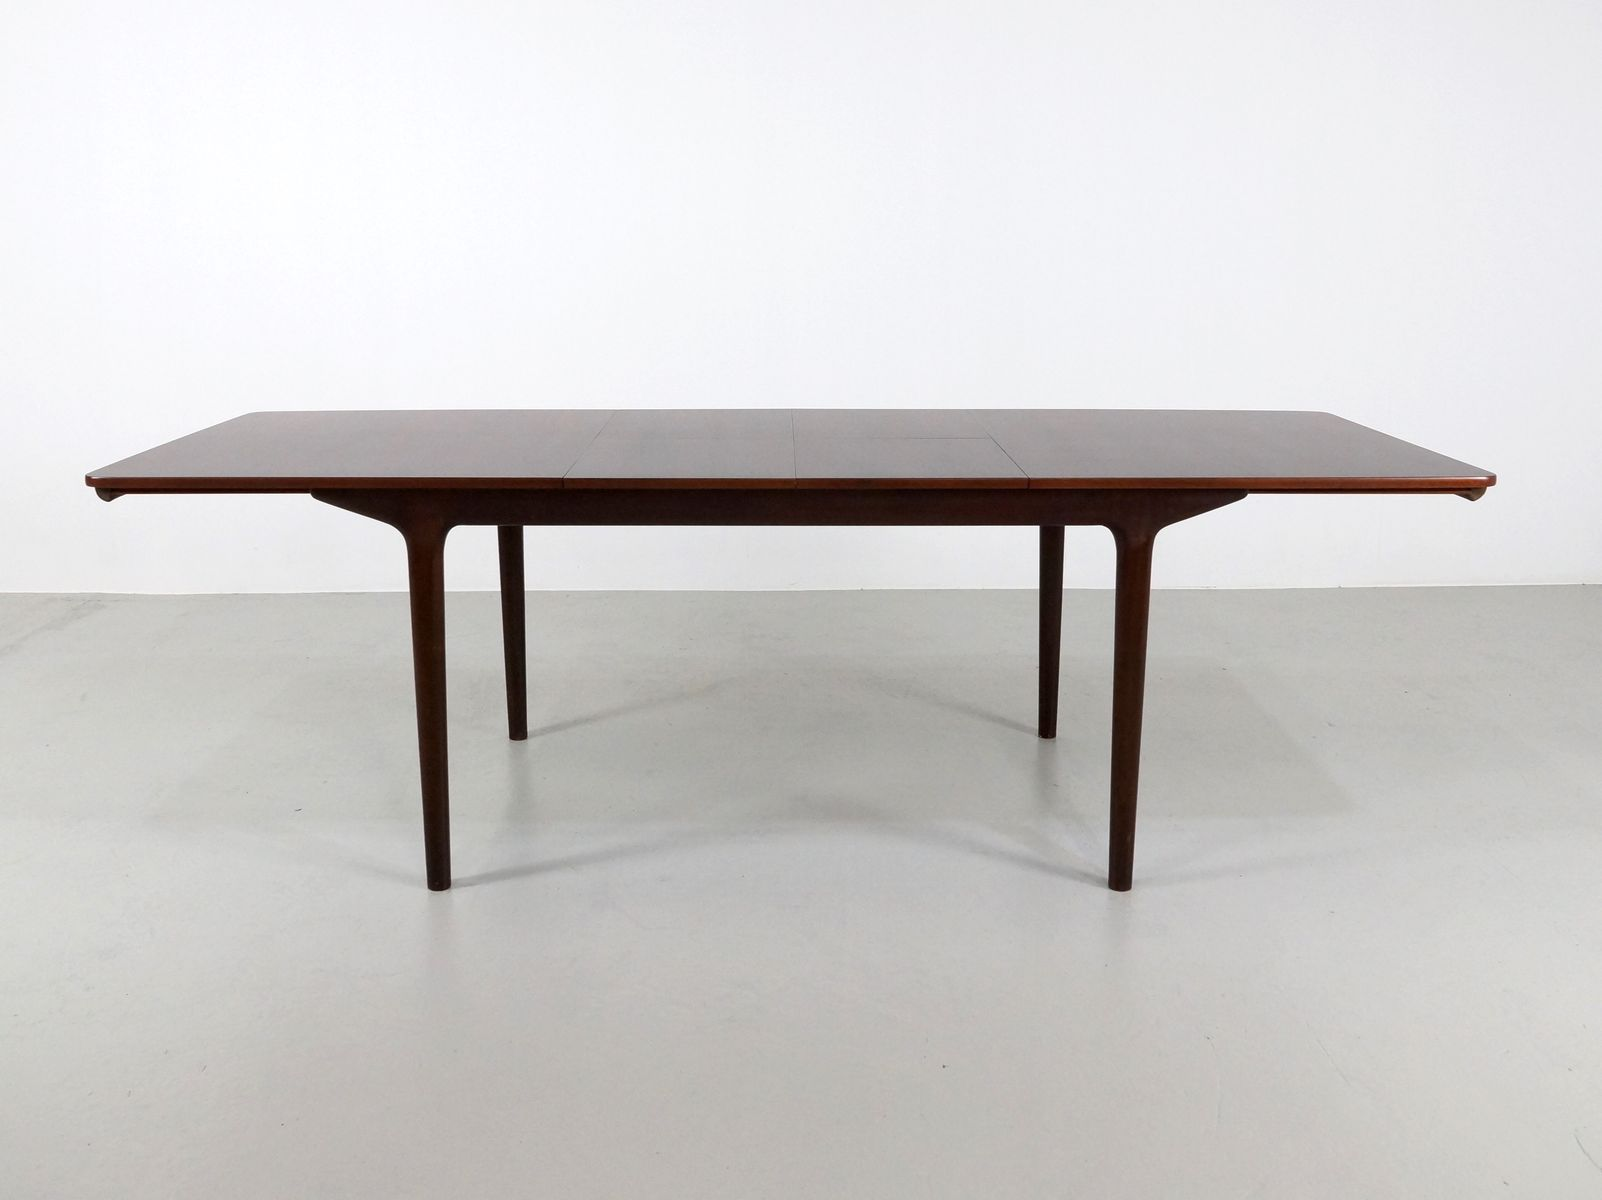 British Extendable Rosewood Dining Table from McIntosh  : british extendable rosewood dining table from mcintosh 1971 8 from www.pamono.co.uk size 1602 x 1200 jpeg 57kB